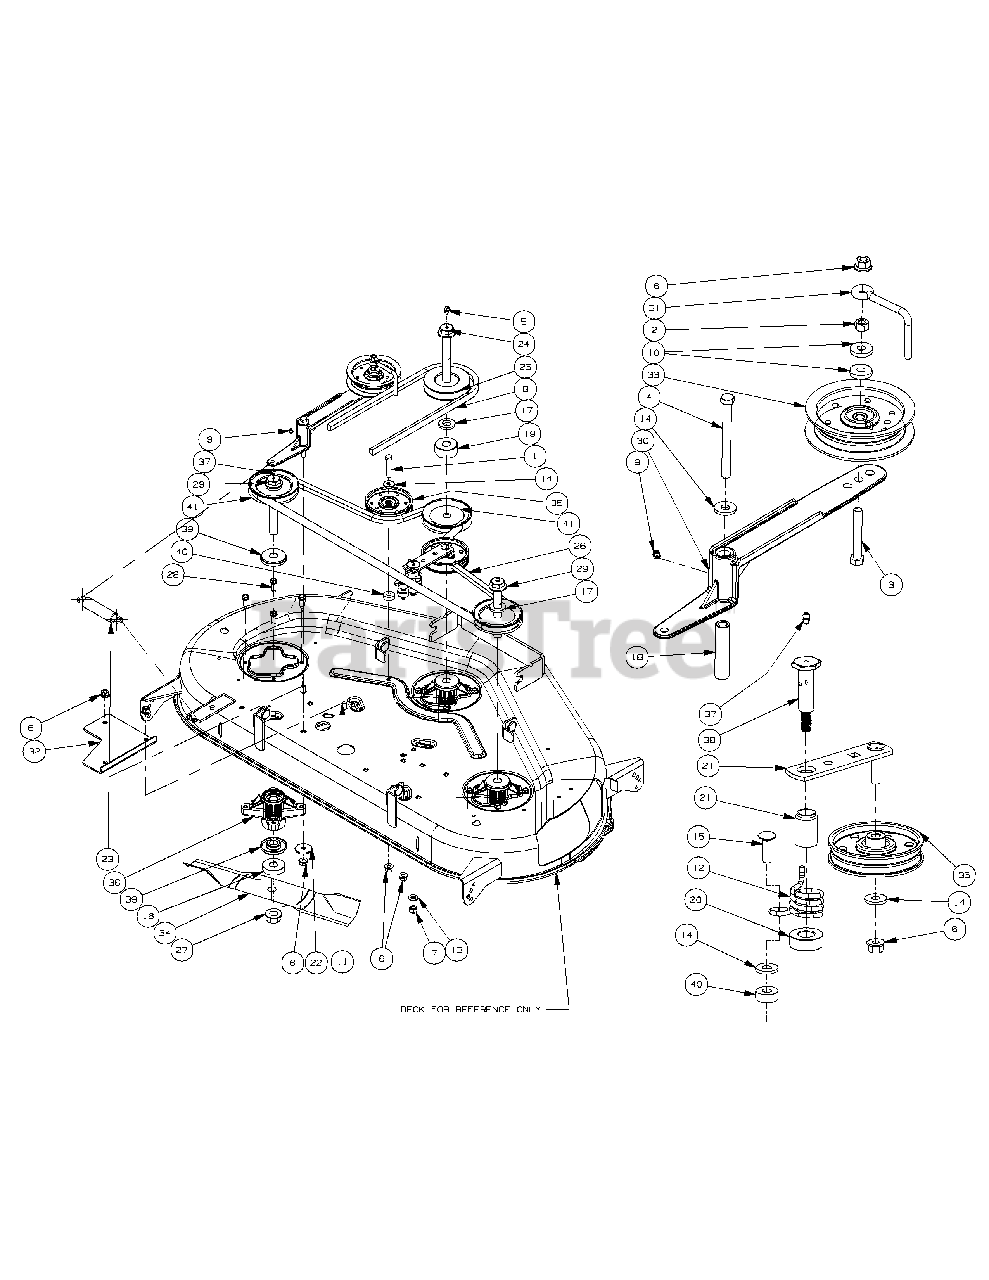 [DIAGRAM] Wire Diagram For Cub Cadet Z Force FULL Version